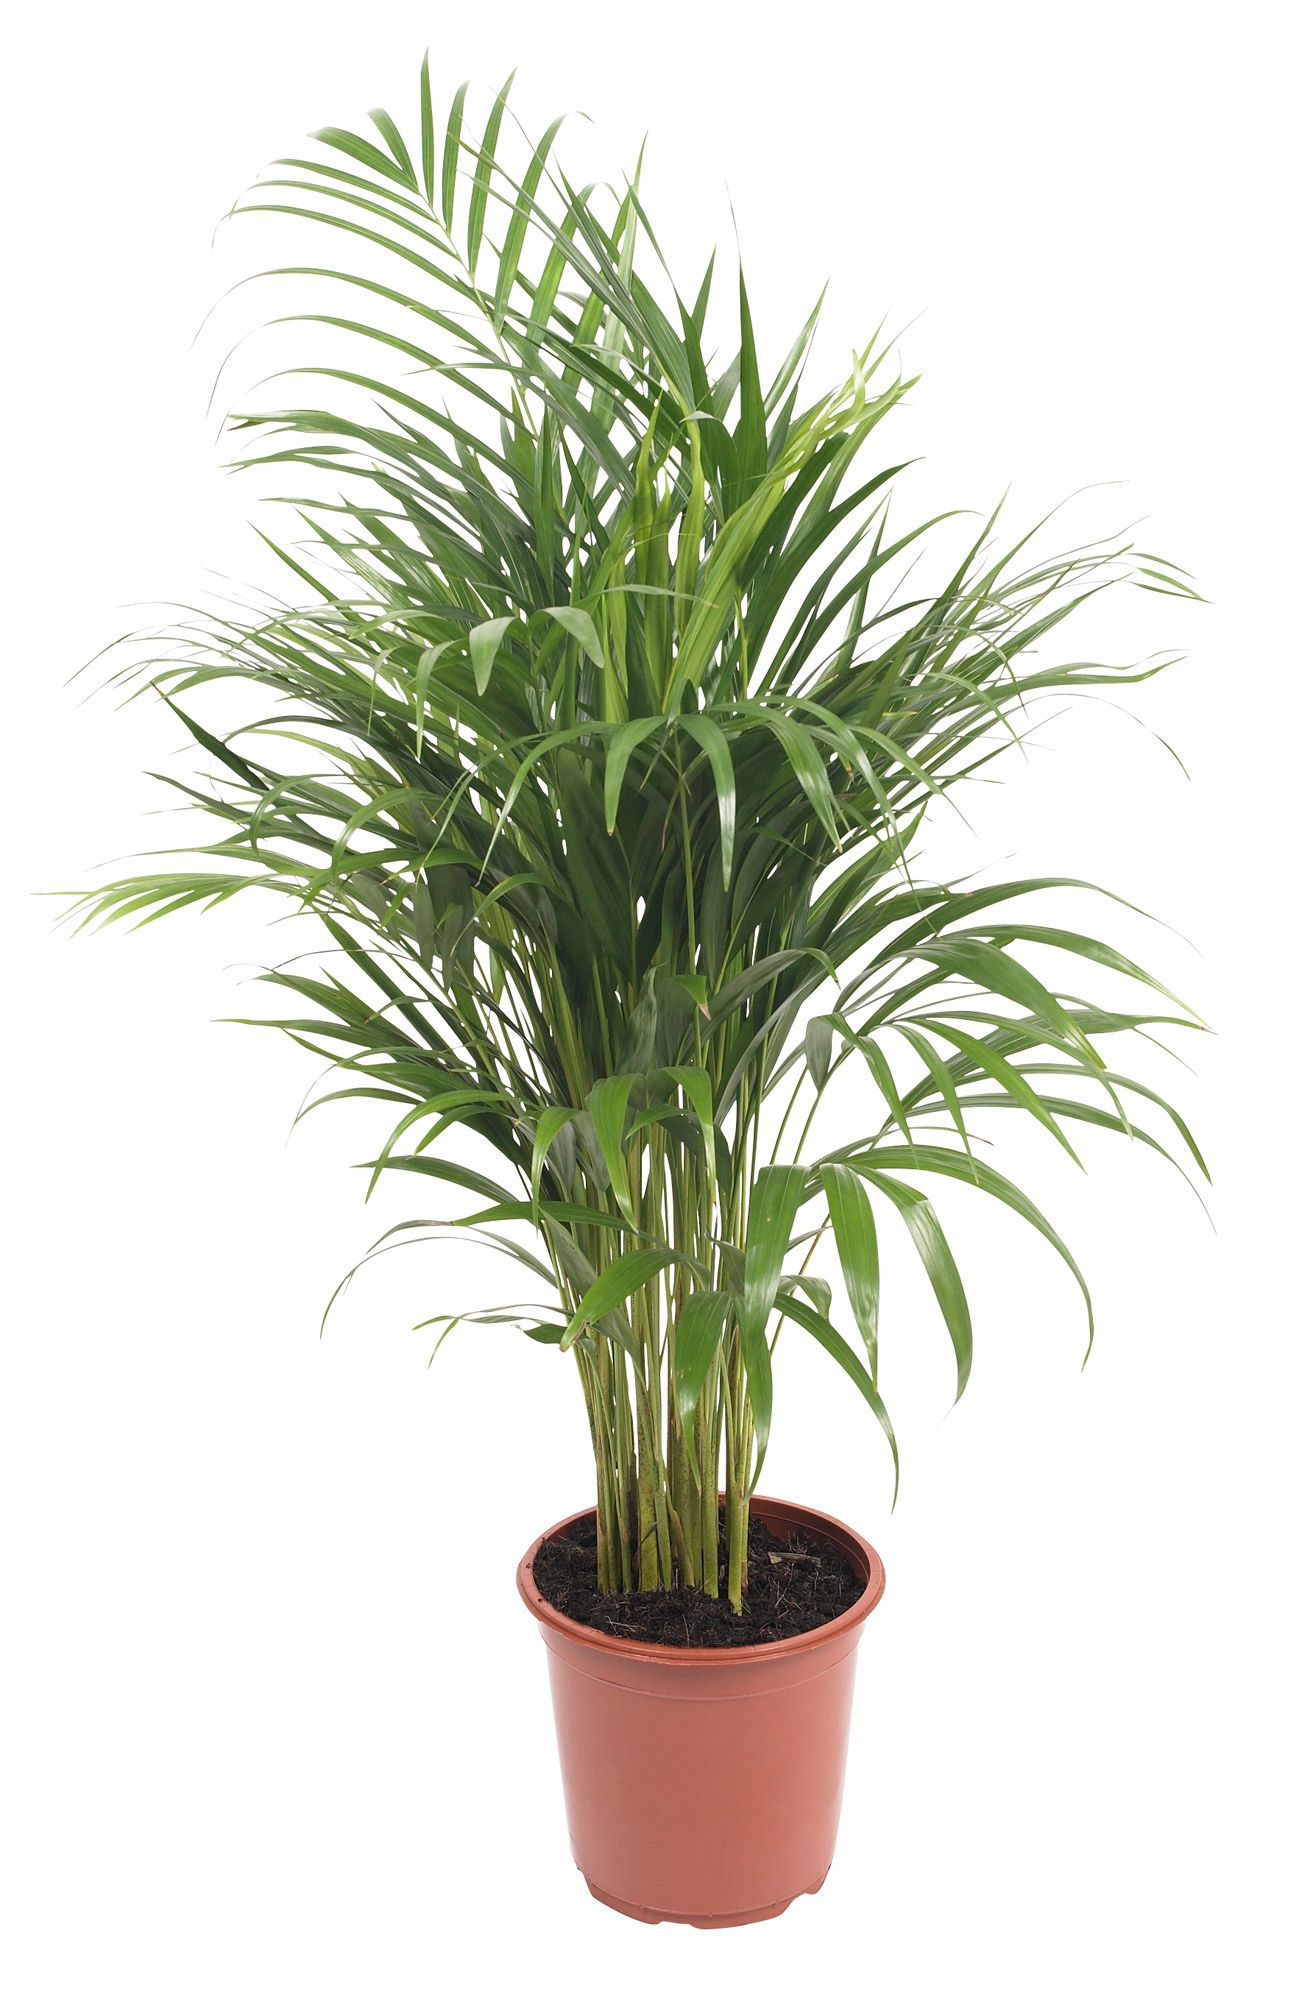 B Amp Q Green Palm Tree In Plant Pot Departments Diy At B Amp Q